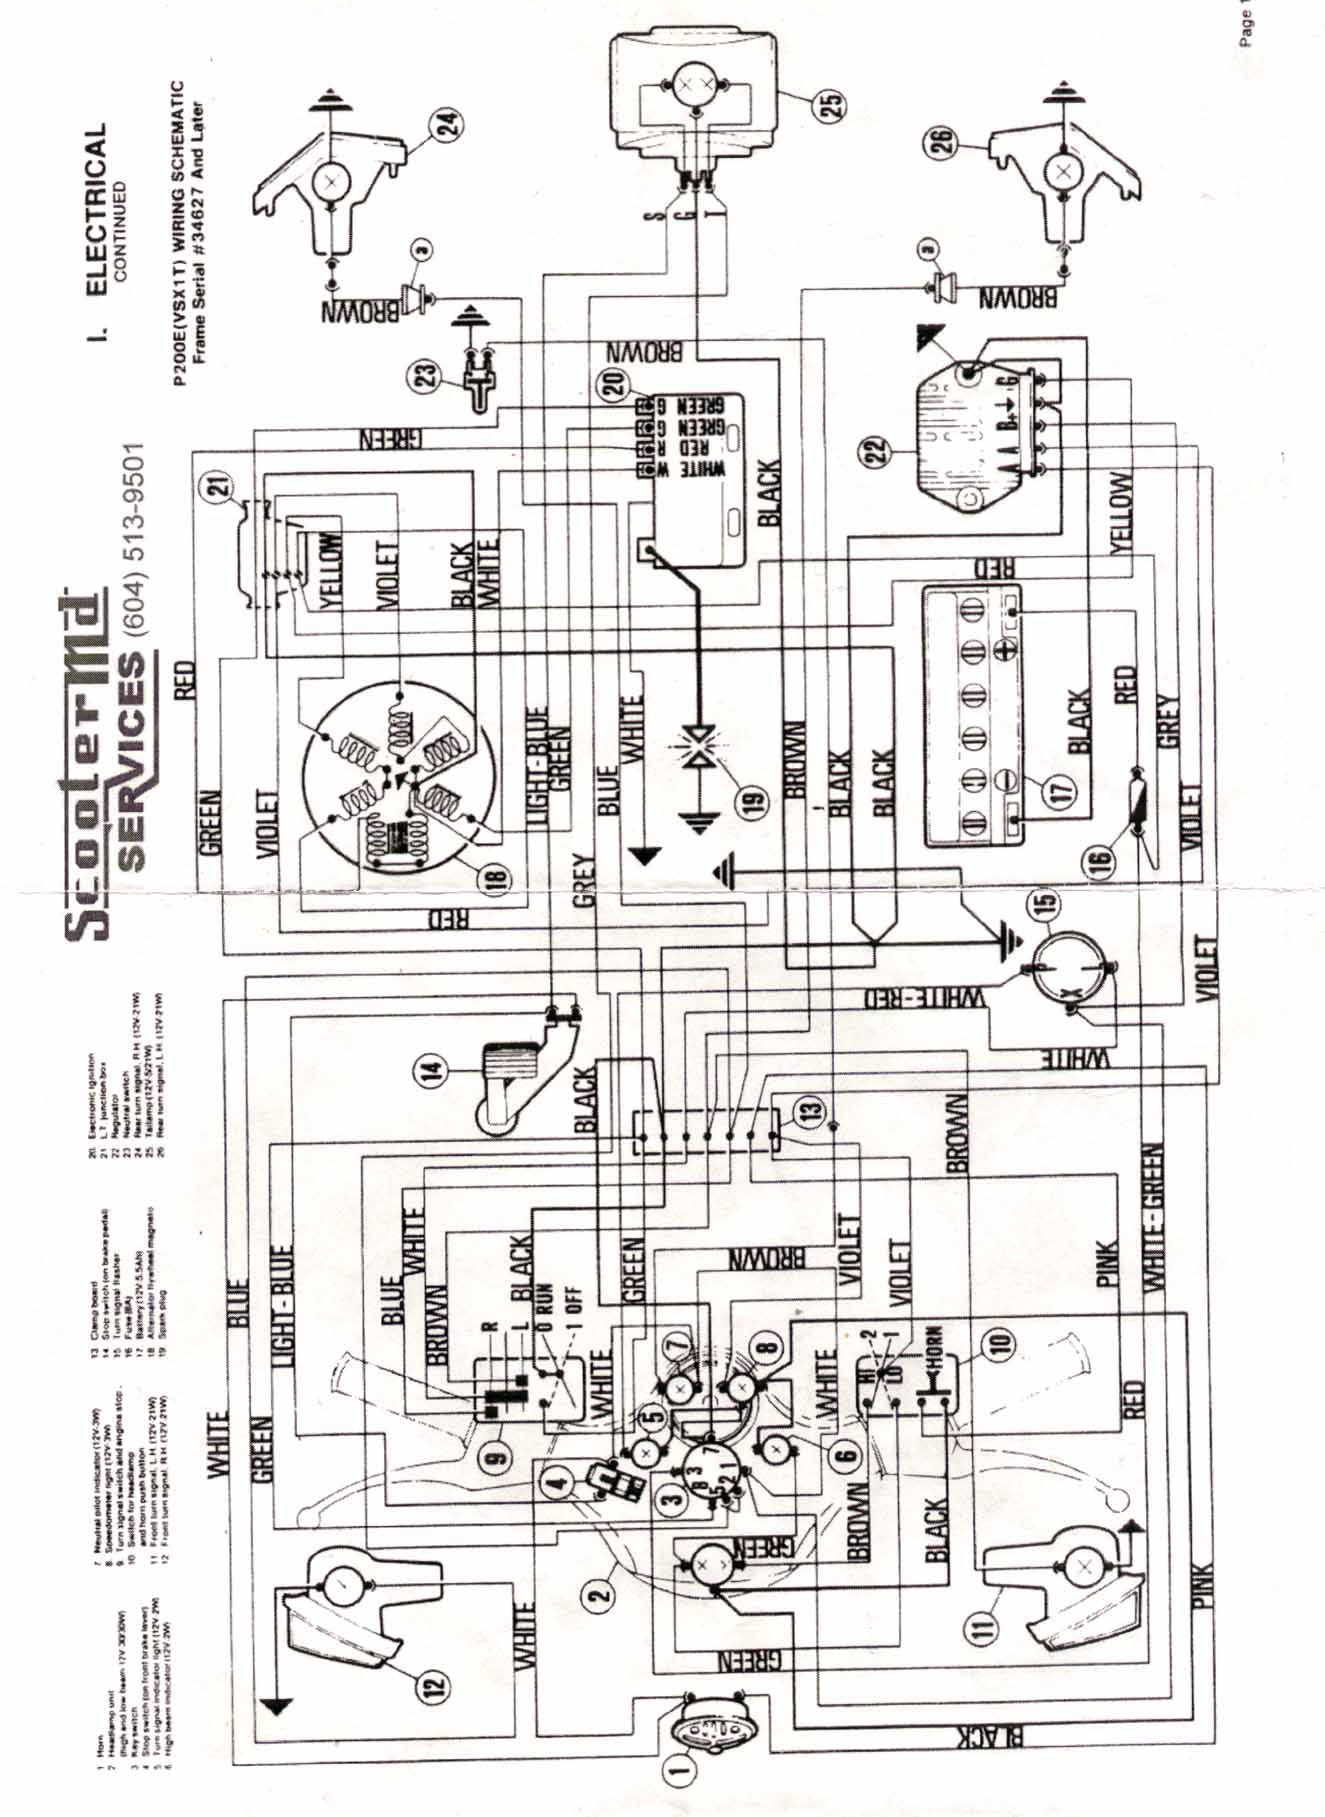 p200diag2 vespa p series maintenance & repair vespa wiring diagram at edmiracle.co